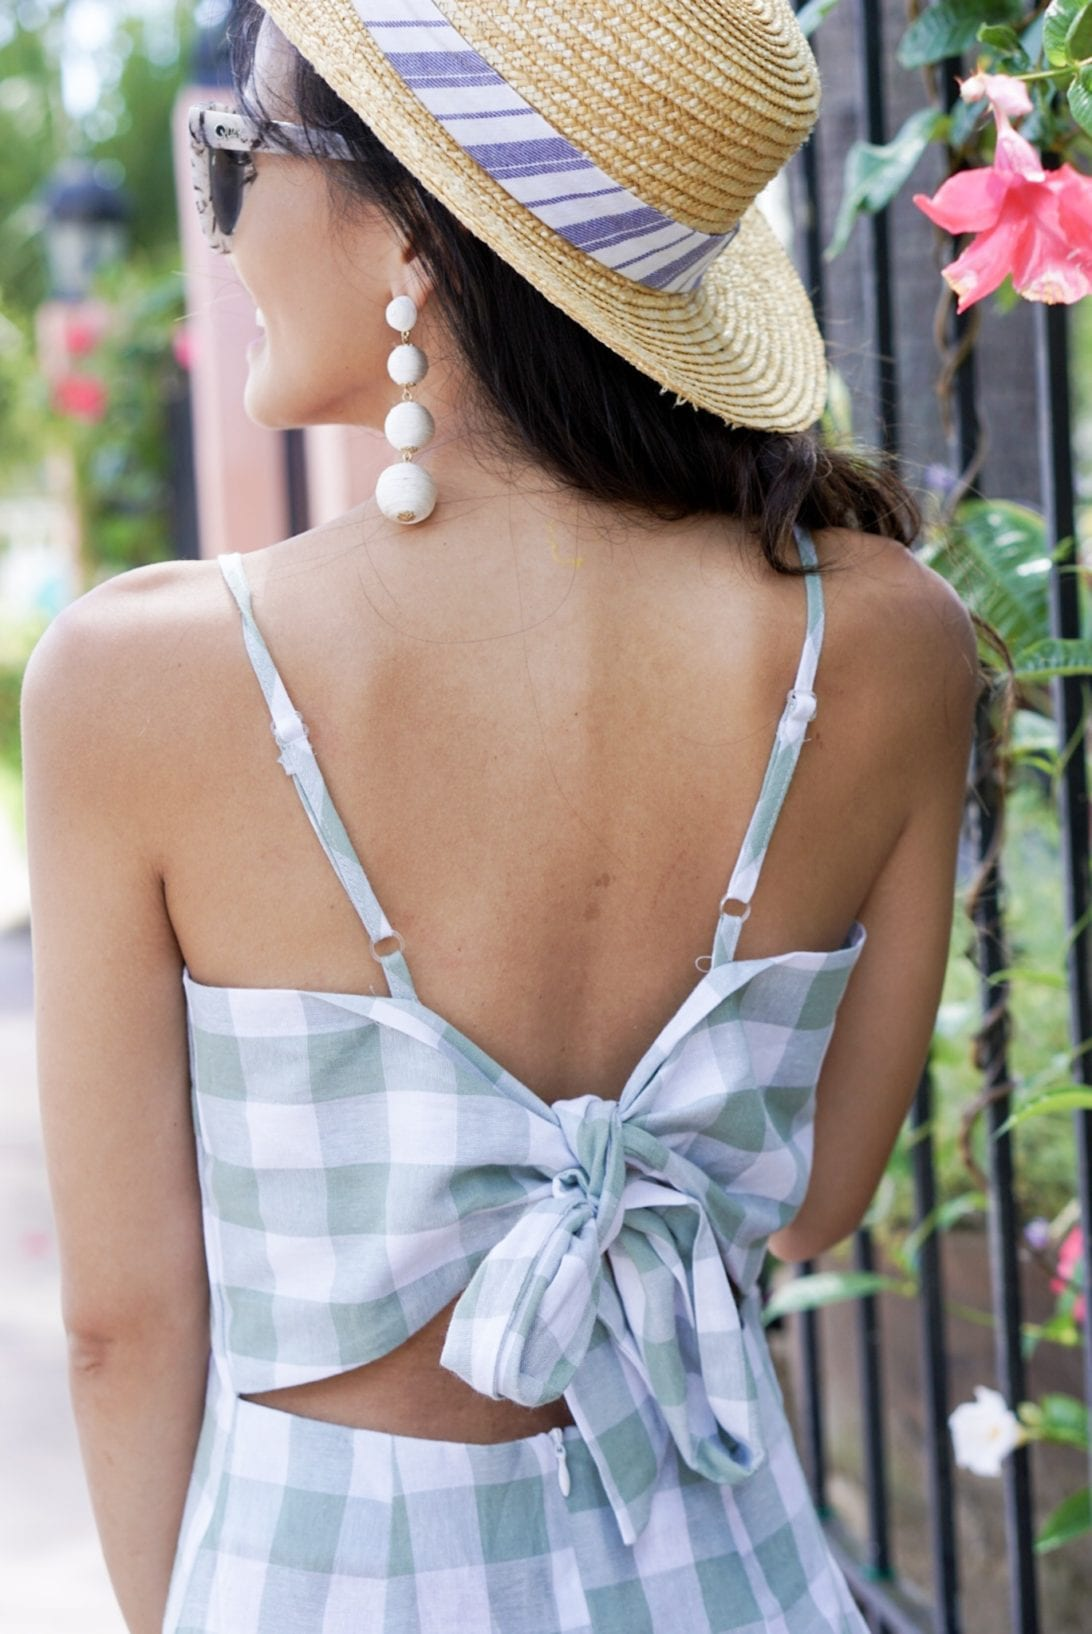 GREEN GINGHAM DRESS, SUMMER DRESS UNDER $50, SUMMER STYLE. BOAT HAT, BAUBLE BALL EARRINGS, FLORIDA, VACATION OUTFIT, VACATIONS STYLE, QUAY SUNGLASSES, MARLEYLILLY, MONOGRAMMED STRAW BAG, SUMMER BAG, GOLD SANDALS, SUMMER VACATION OUTFIT, BOW DETAIL